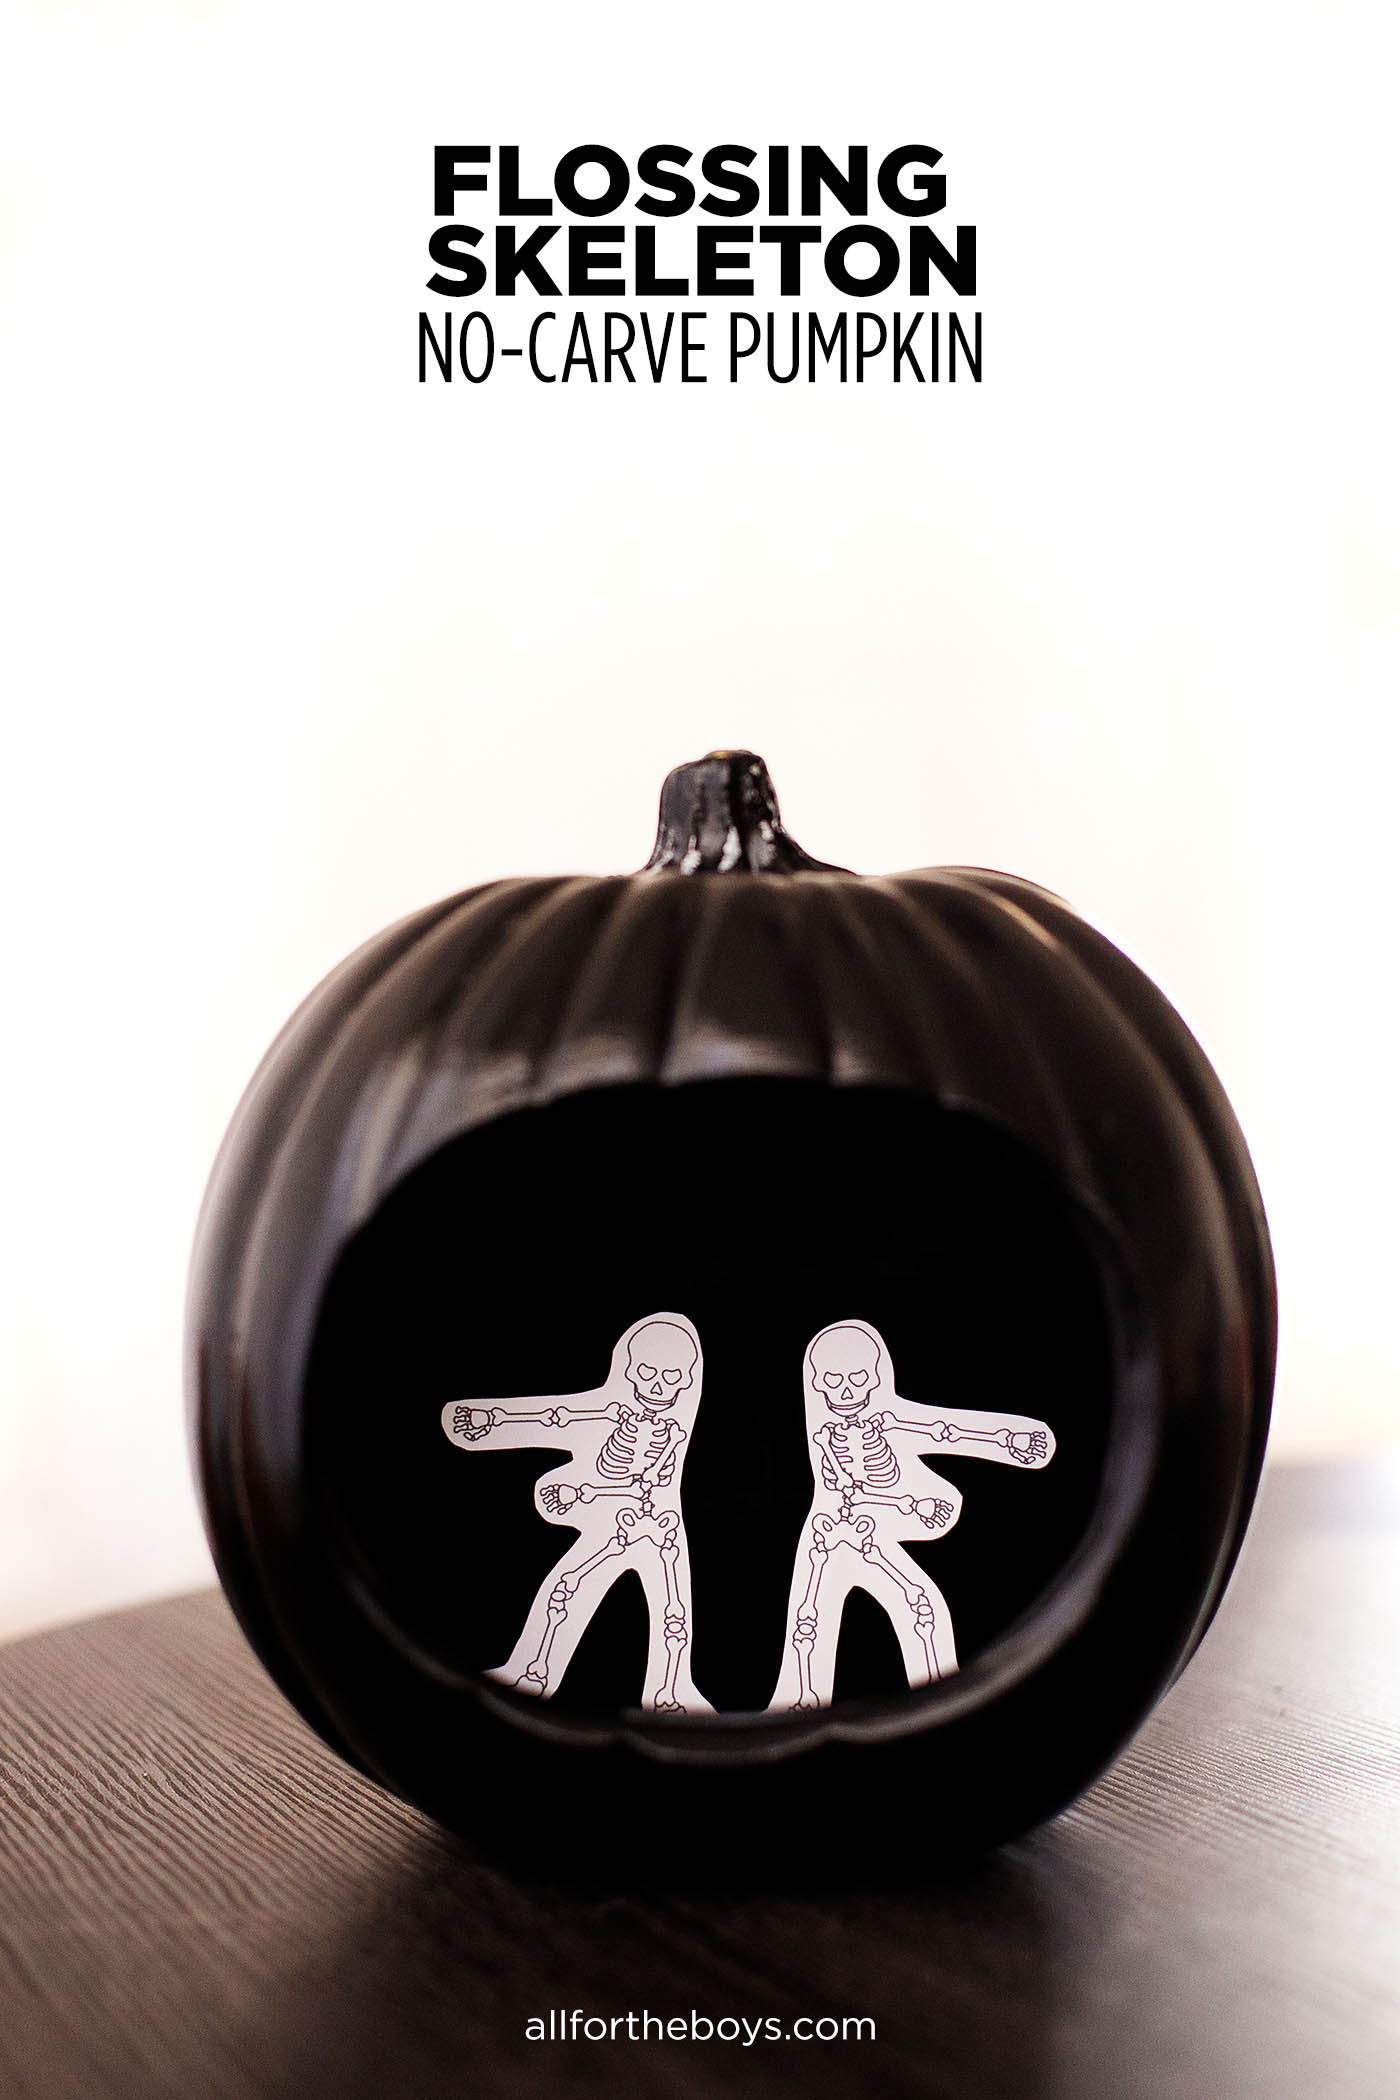 DIY no-carve flossing skeleton pumpkin #halloween #nocarvepumpkin #pumpkin